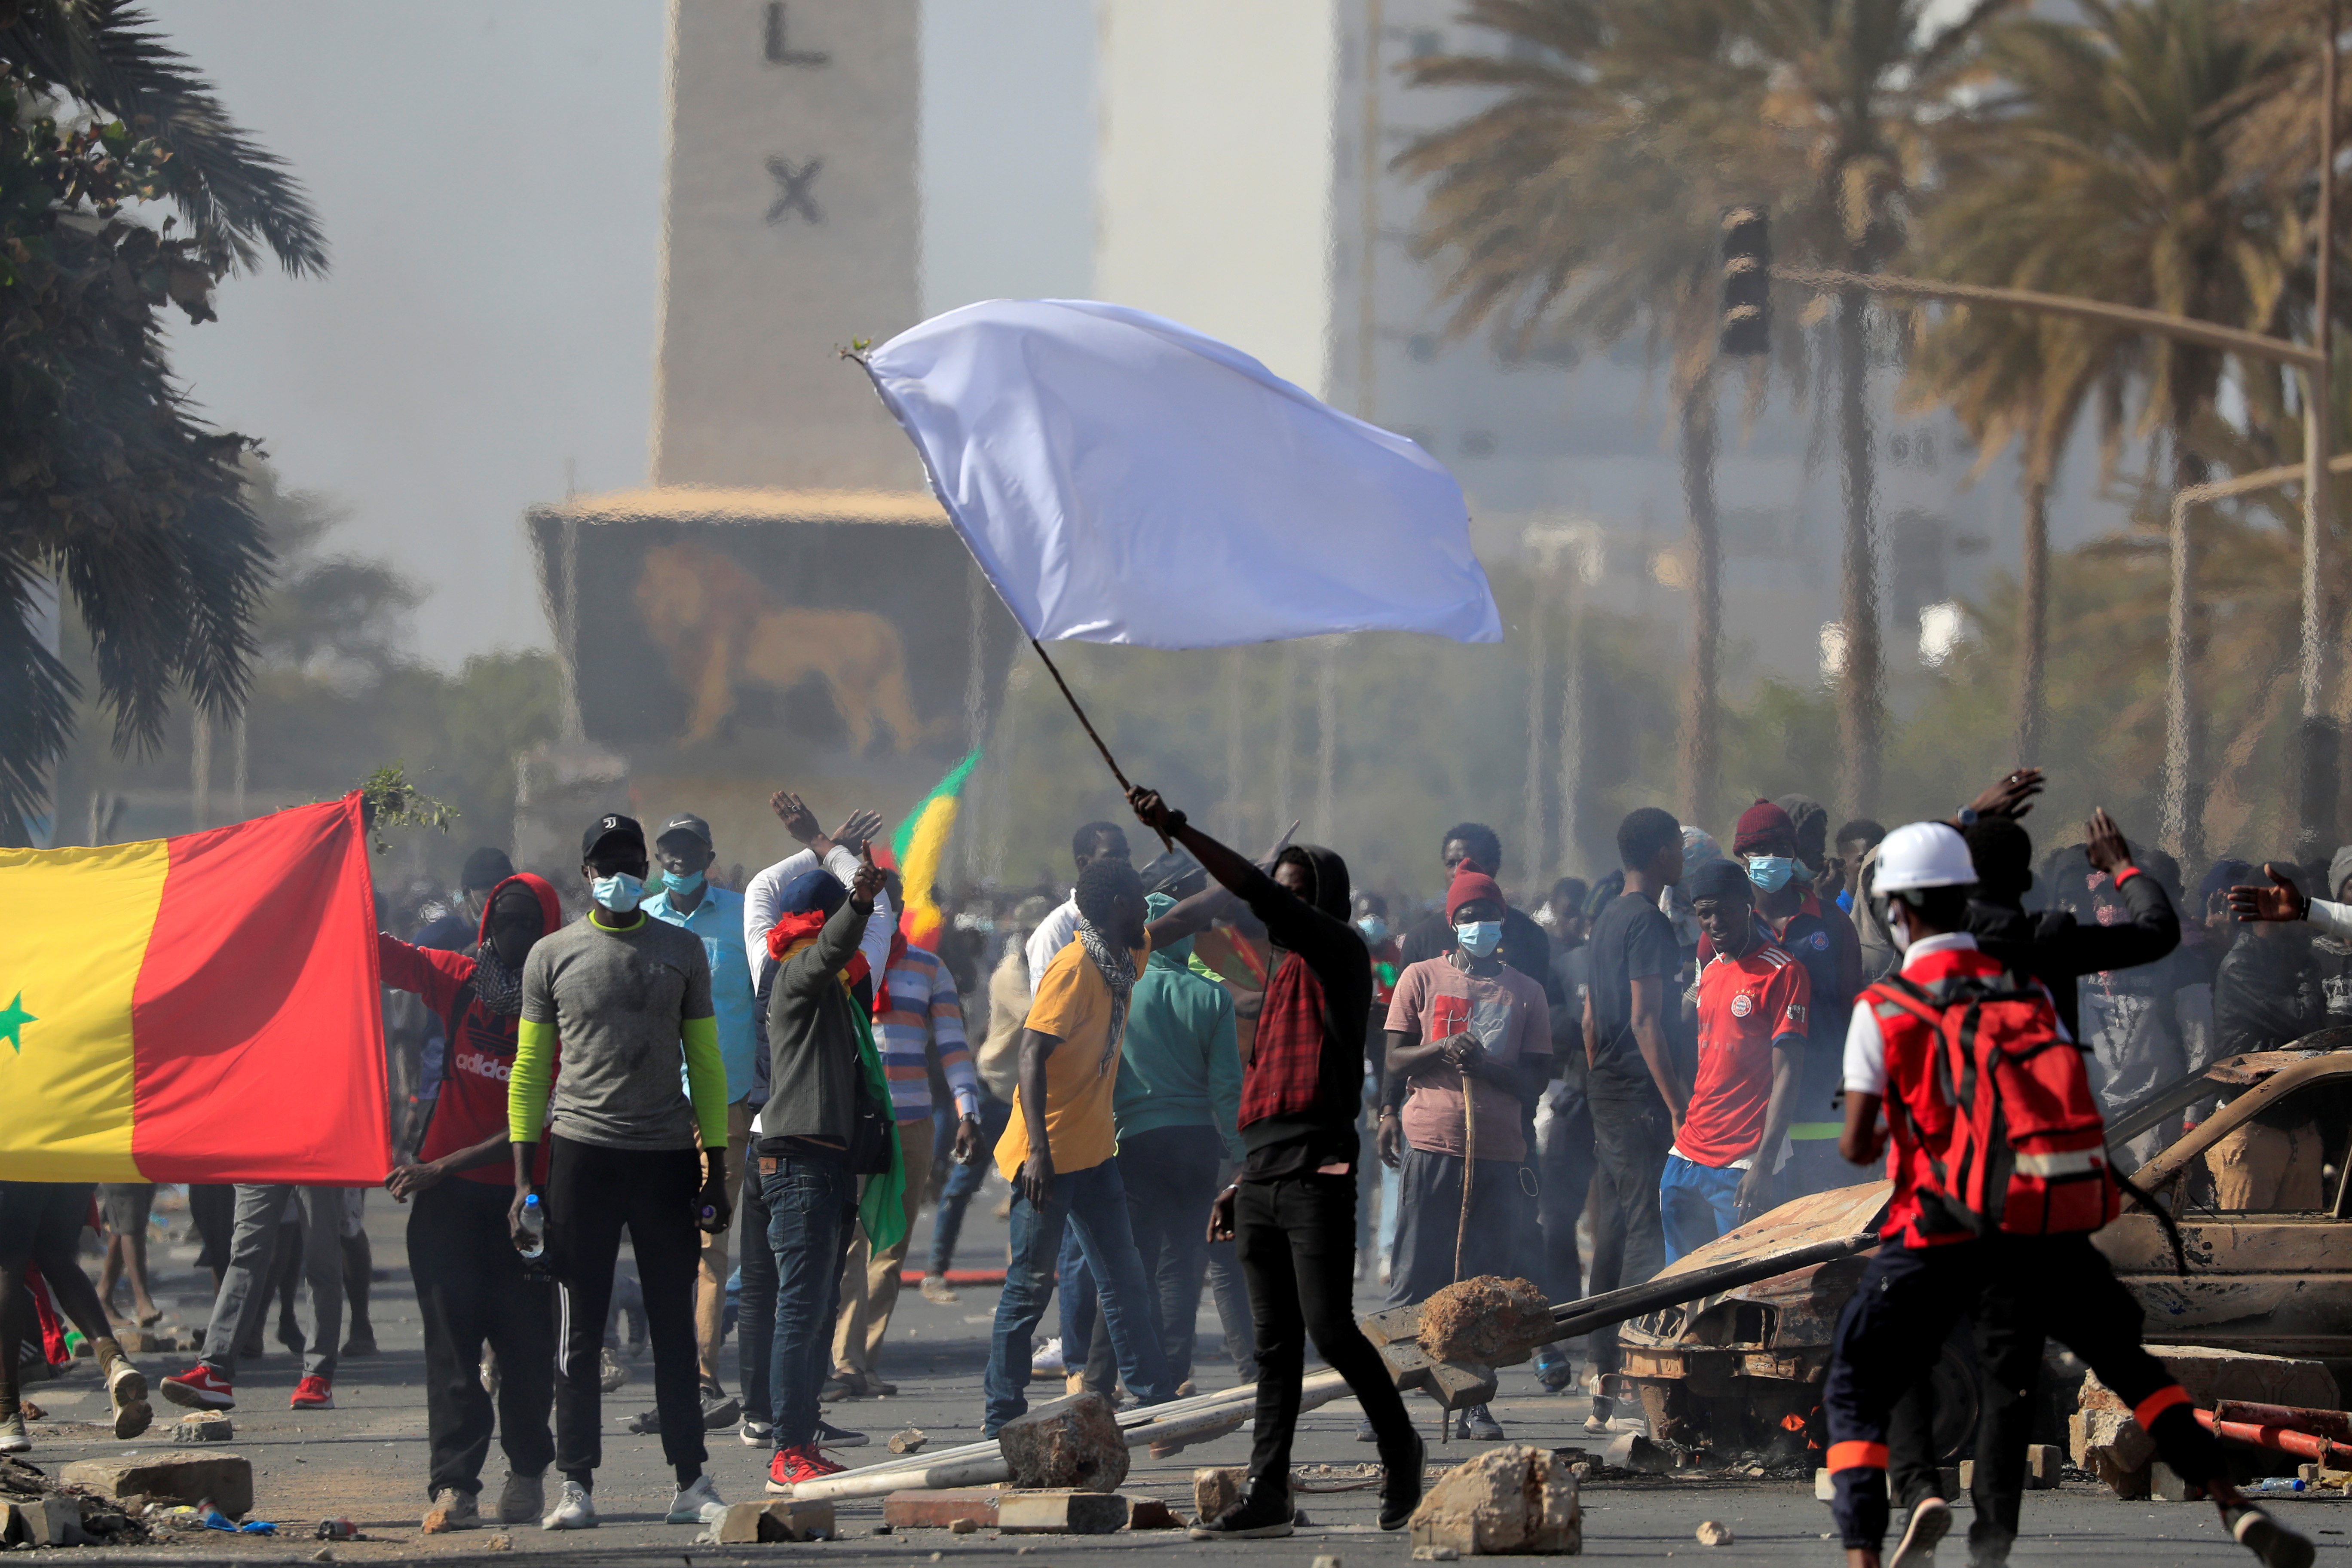 A supporter of opposition leader Ousmane Sonko holds a white flag during clashes with security forces in Dakar, Senegal March 8.